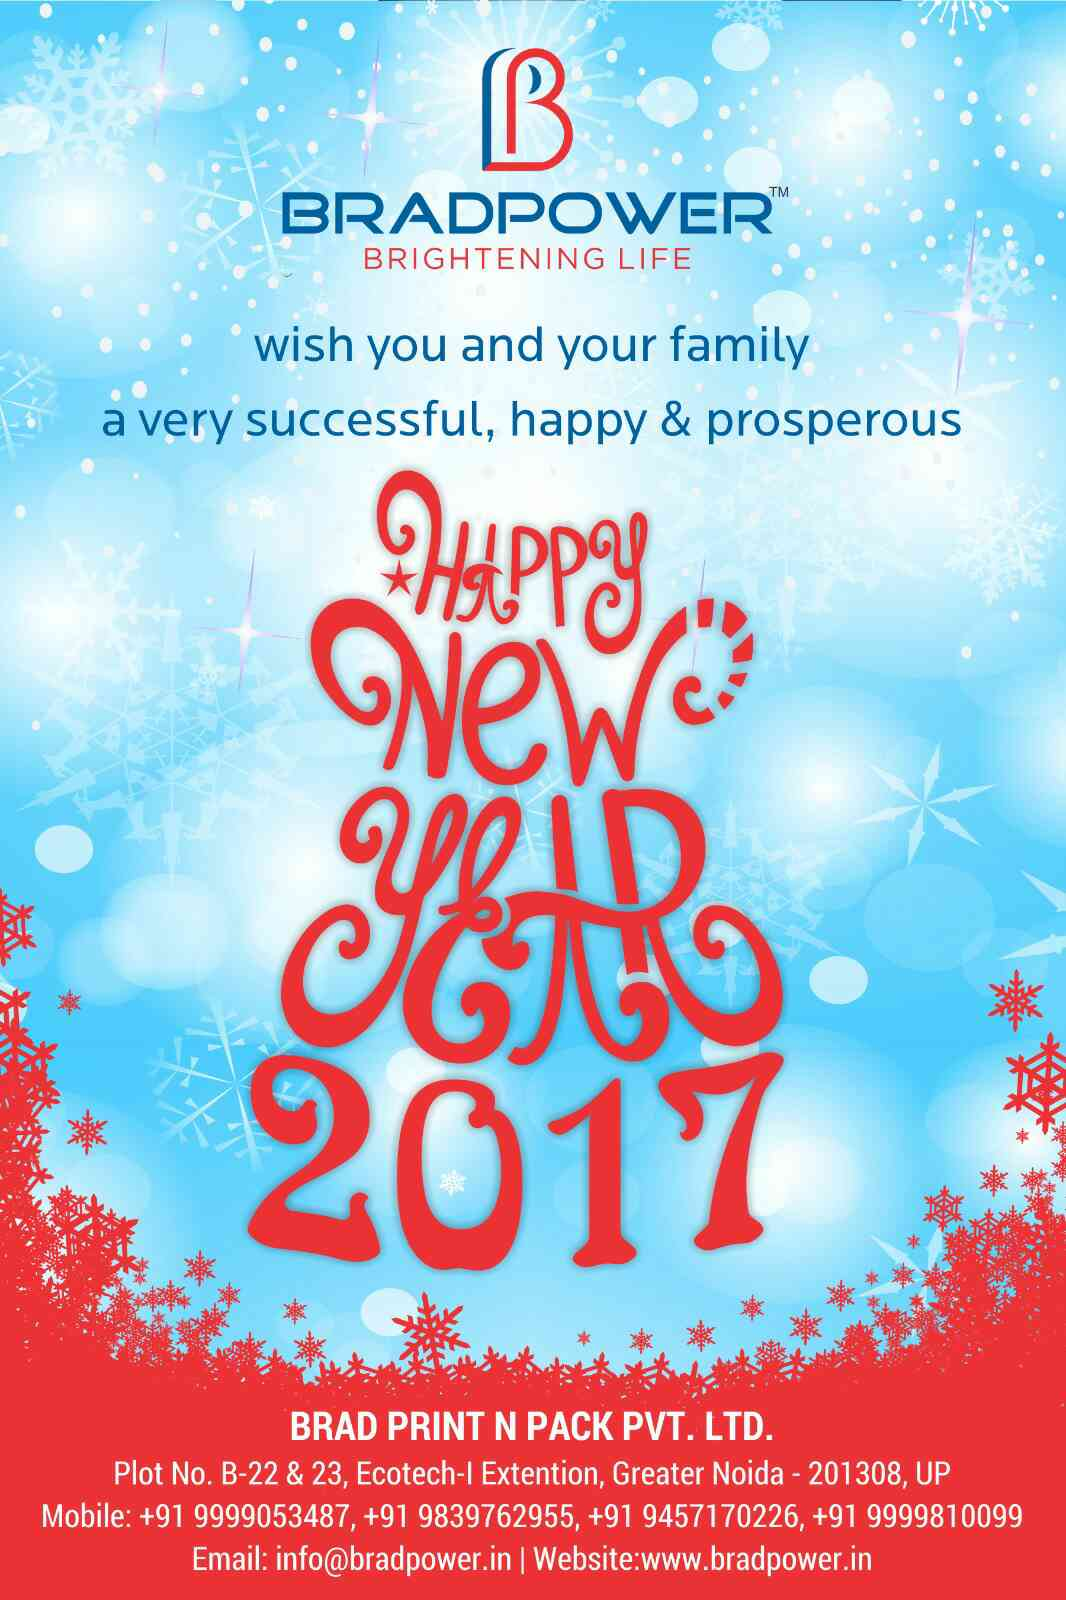 WISH YOU ALL VERY HAPPY AND PROSPEROUS NEW YEAR 2017..  For more info www.bradpower.in